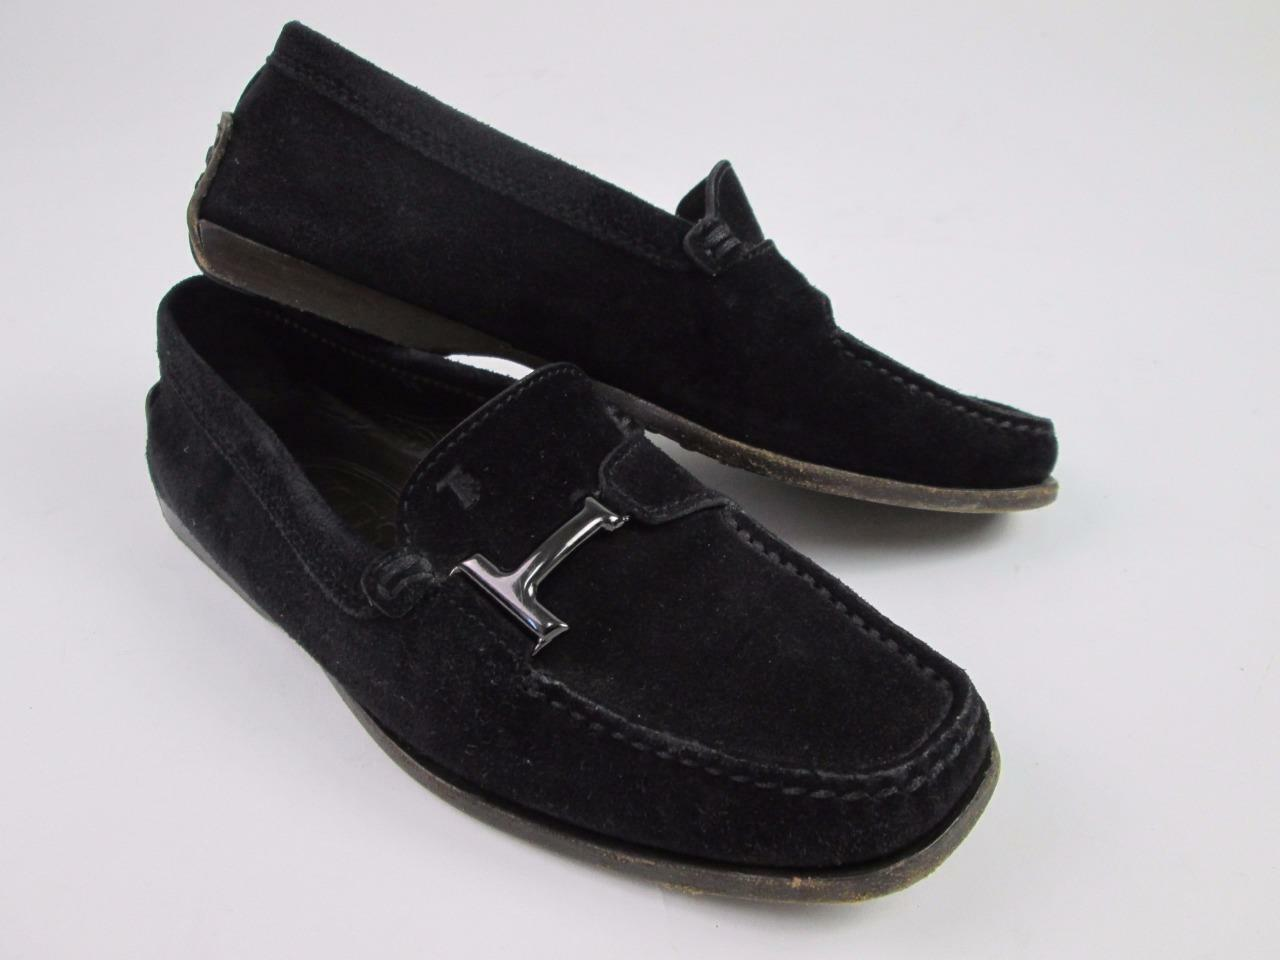 TOD'S  TODS WOMEN BLACK BUCKLE SLIP-ON EUC SUEDE DRIVERS LOAFERS SZ:34/4 EUC SLIP-ON ac2777